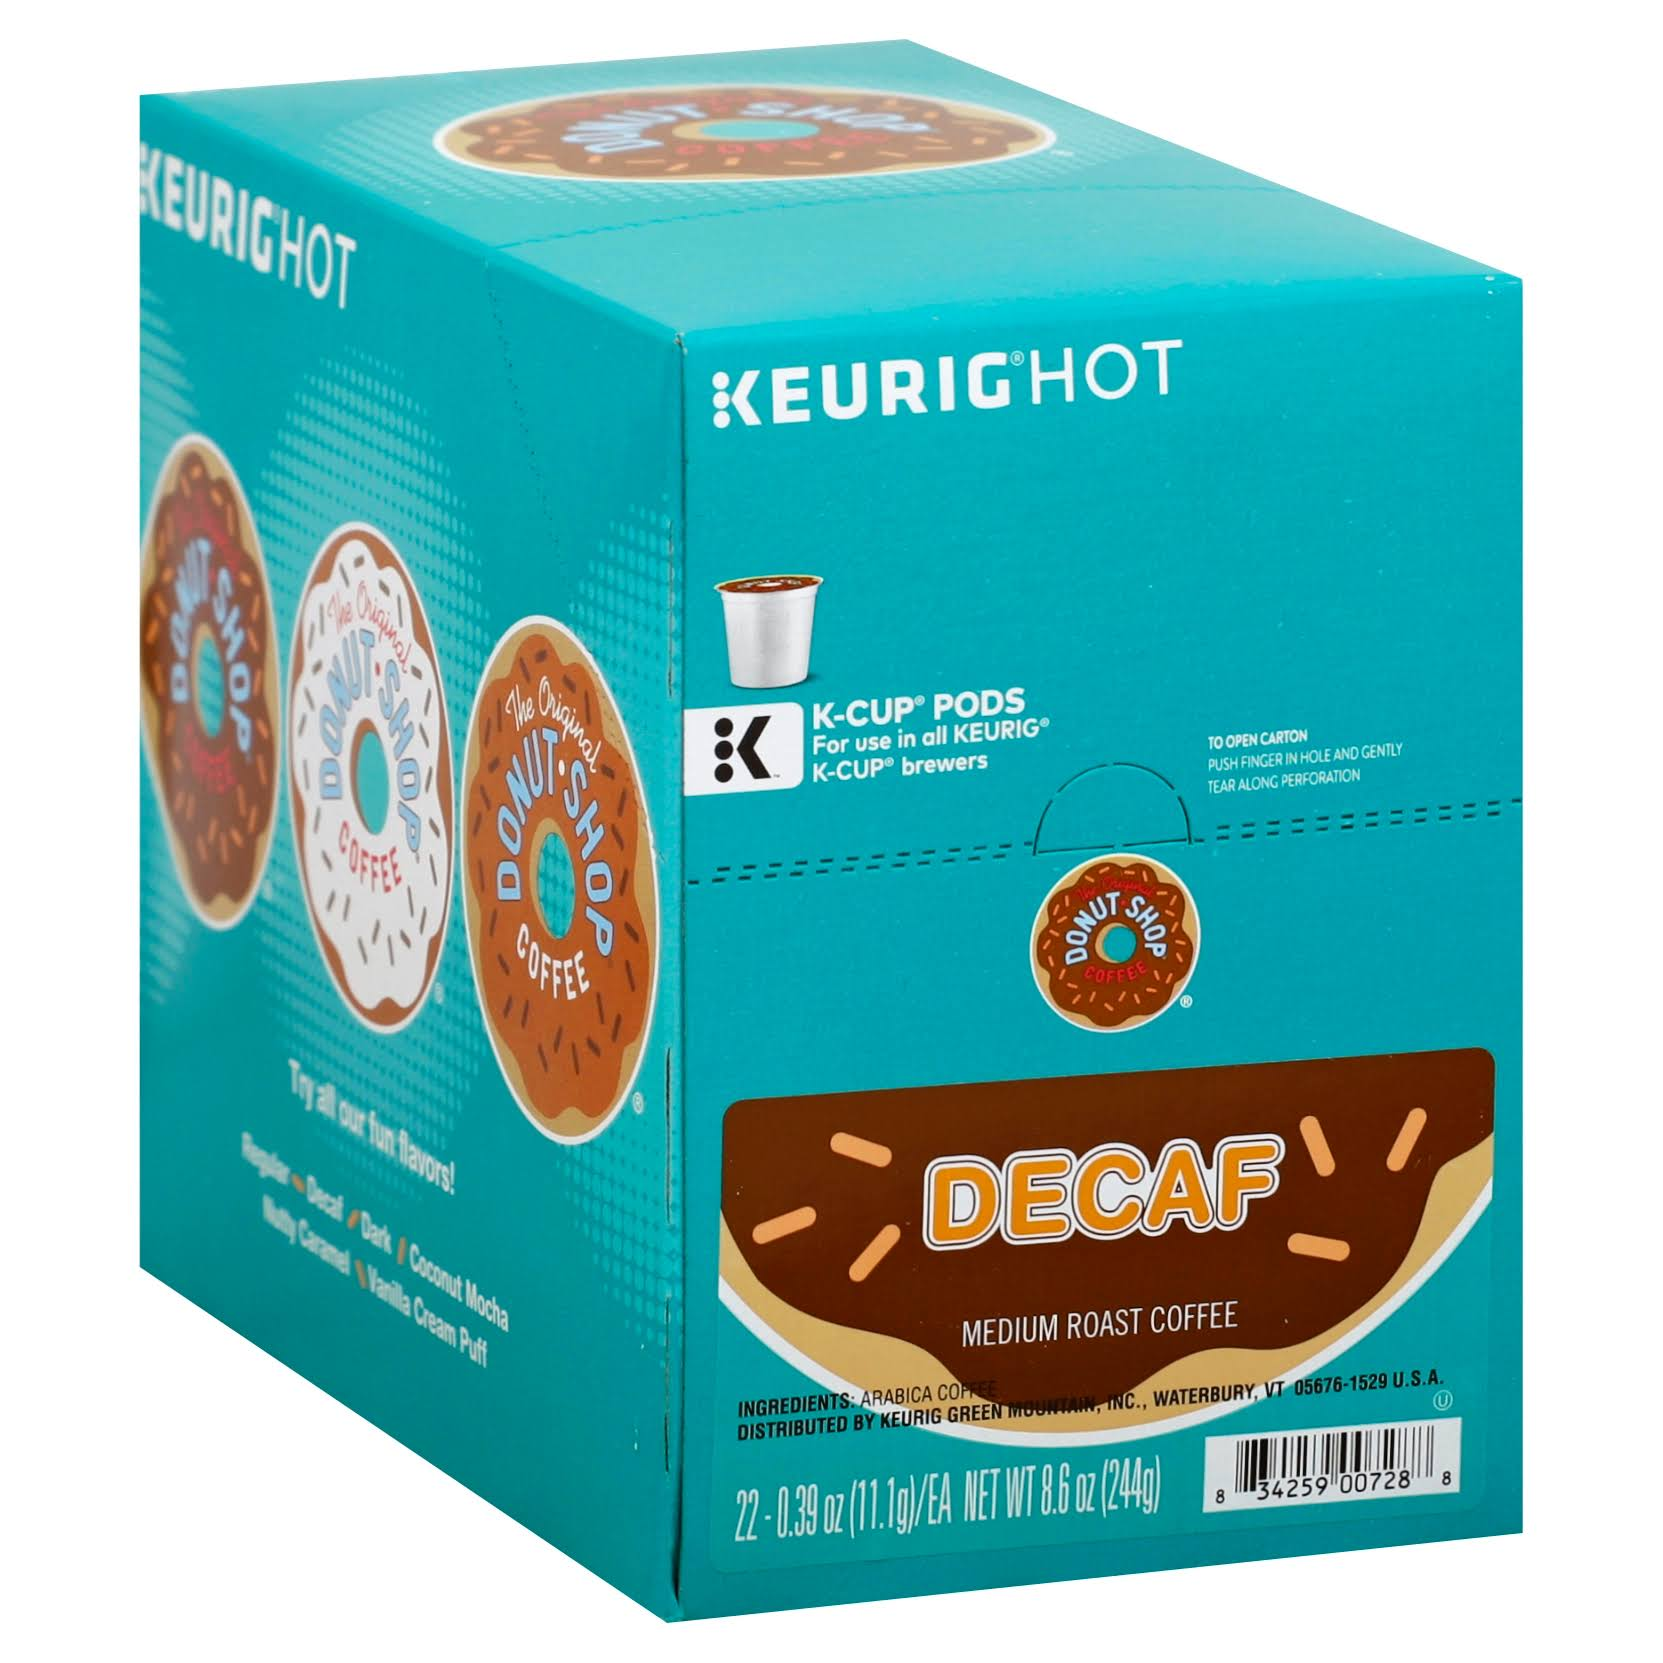 The Original Donut Shop Decaf Keurig K-Cup - Medium Roast Coffee, 22ct, Decaf